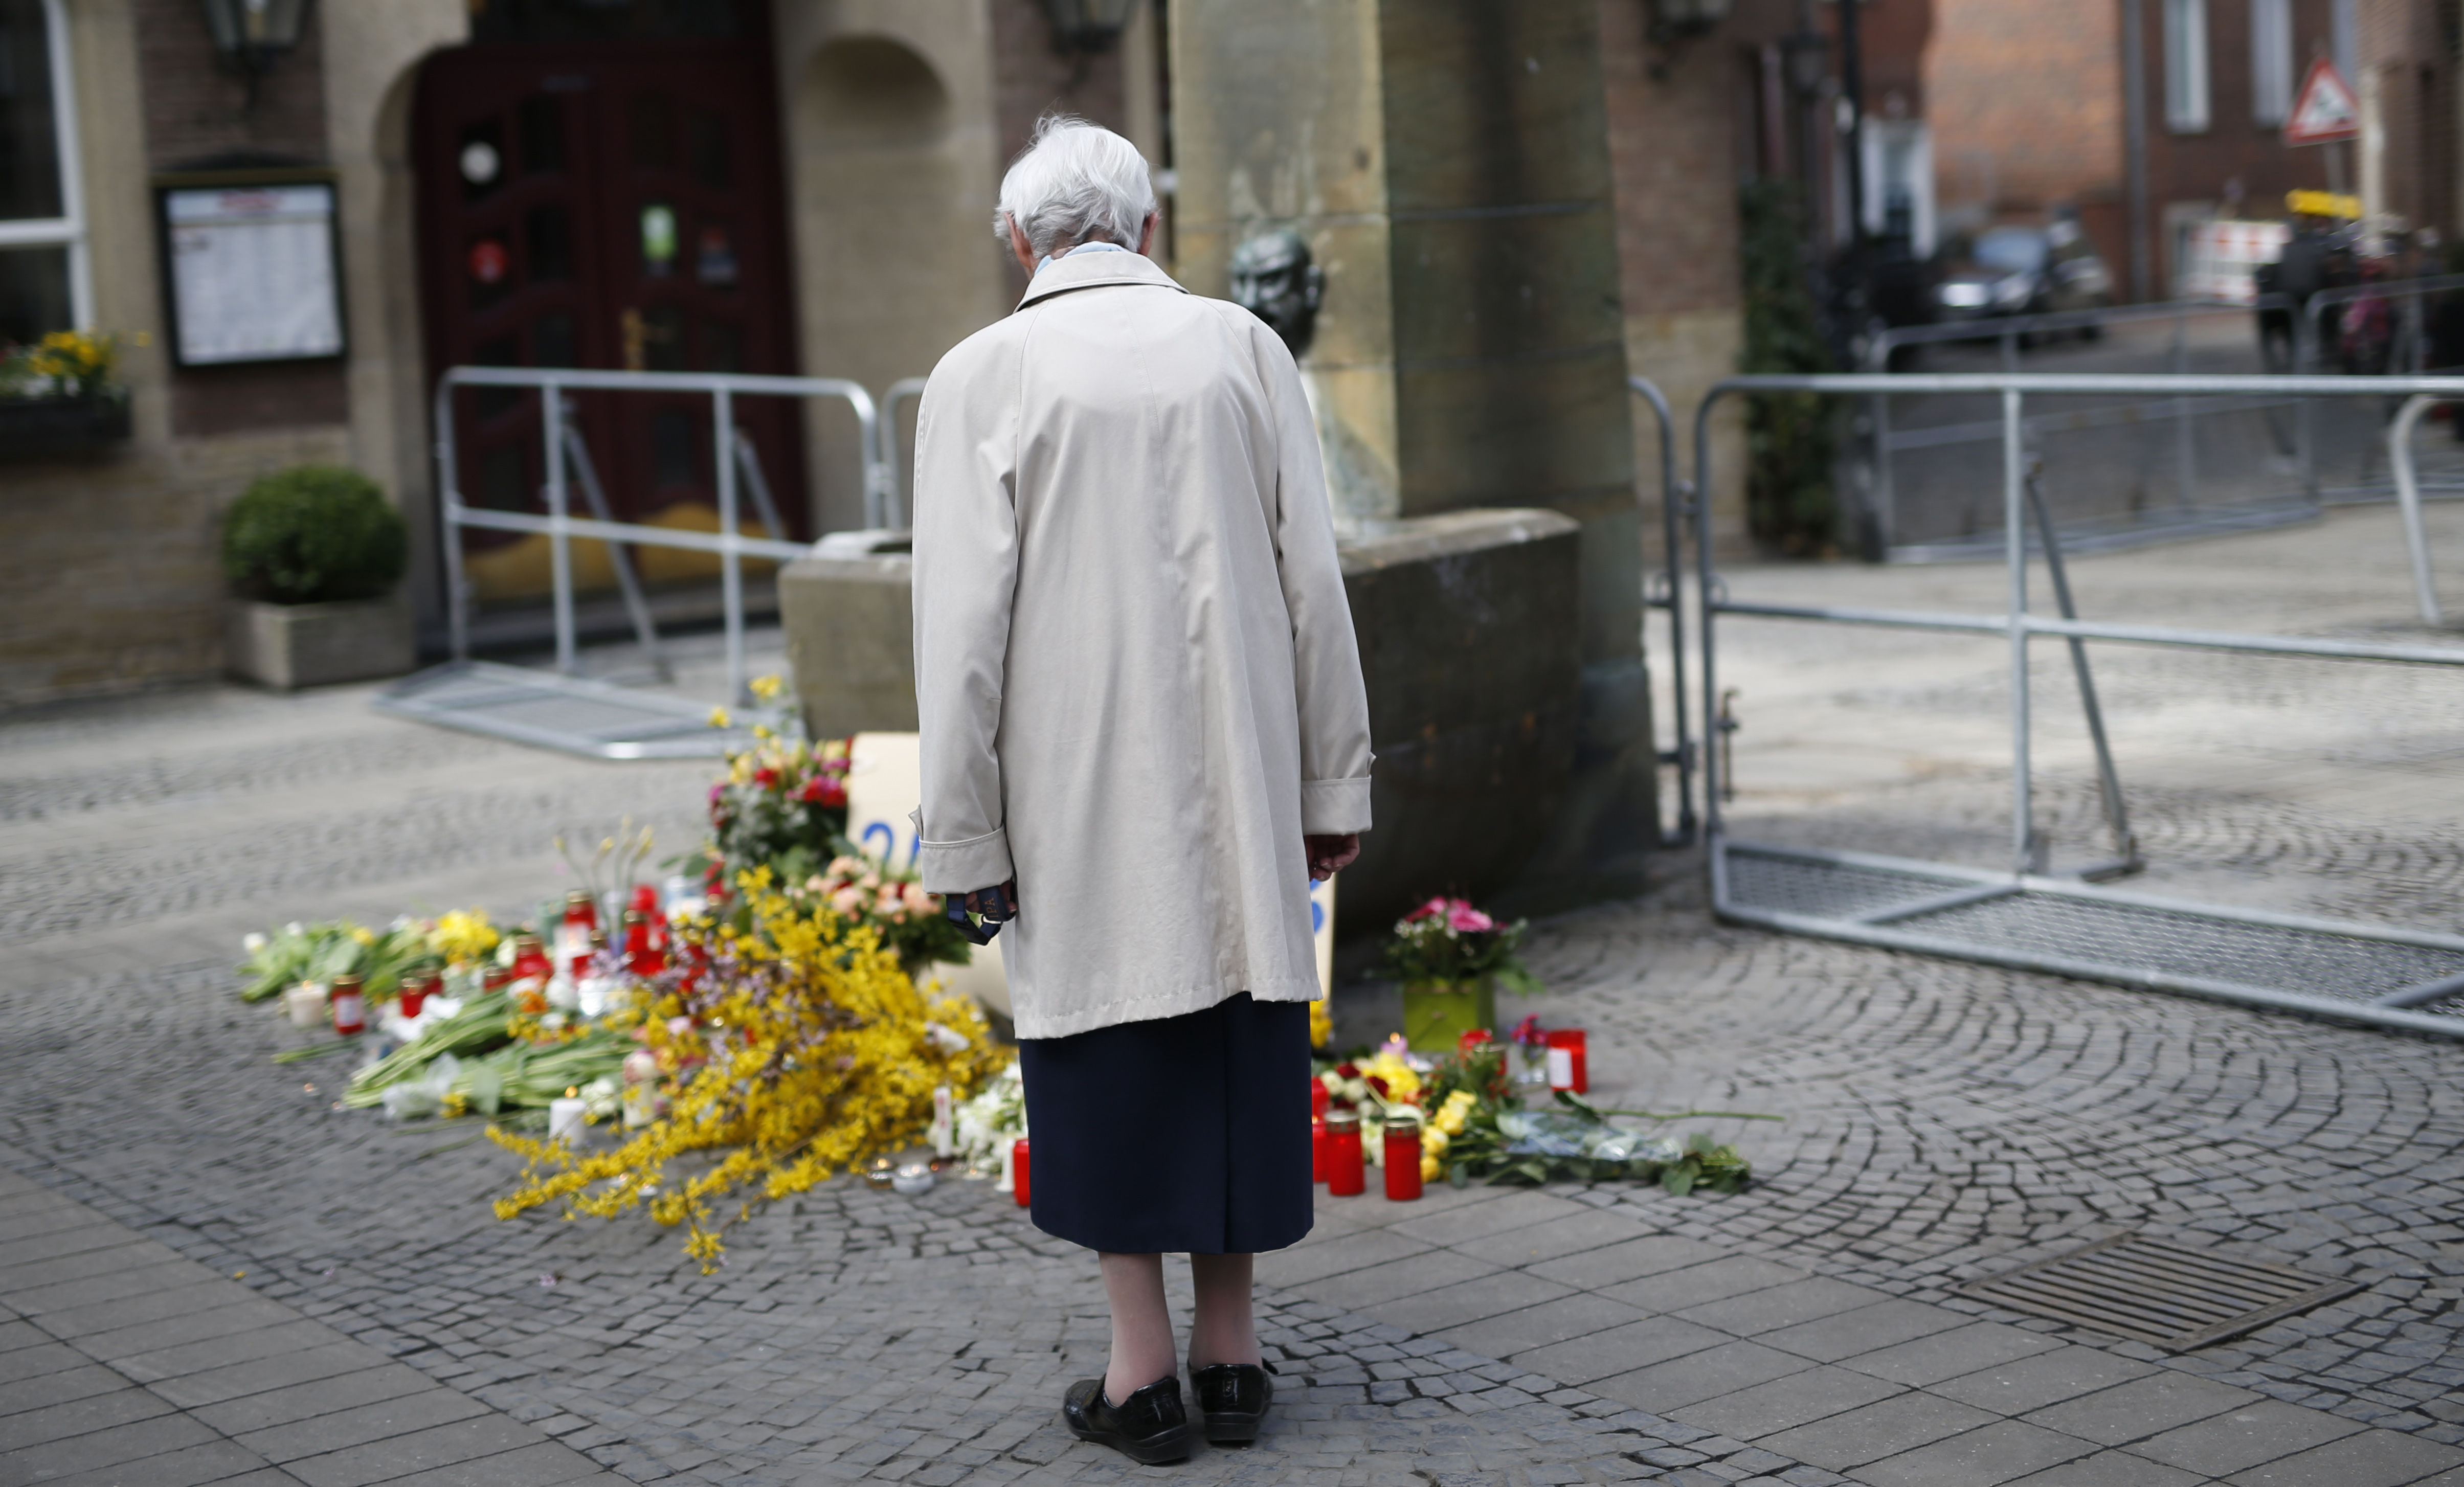 An elderly woman looks at flowers  in front of a fountain in Muenster, western Germany, Sunday, April 8, 2018, one day after a van crashed into people drinking outside the popular bar, killing two people and injuring 20 others before the driver of the vehicle shot and killed himself inside it. (Ina Fassbender/dpa via AP)